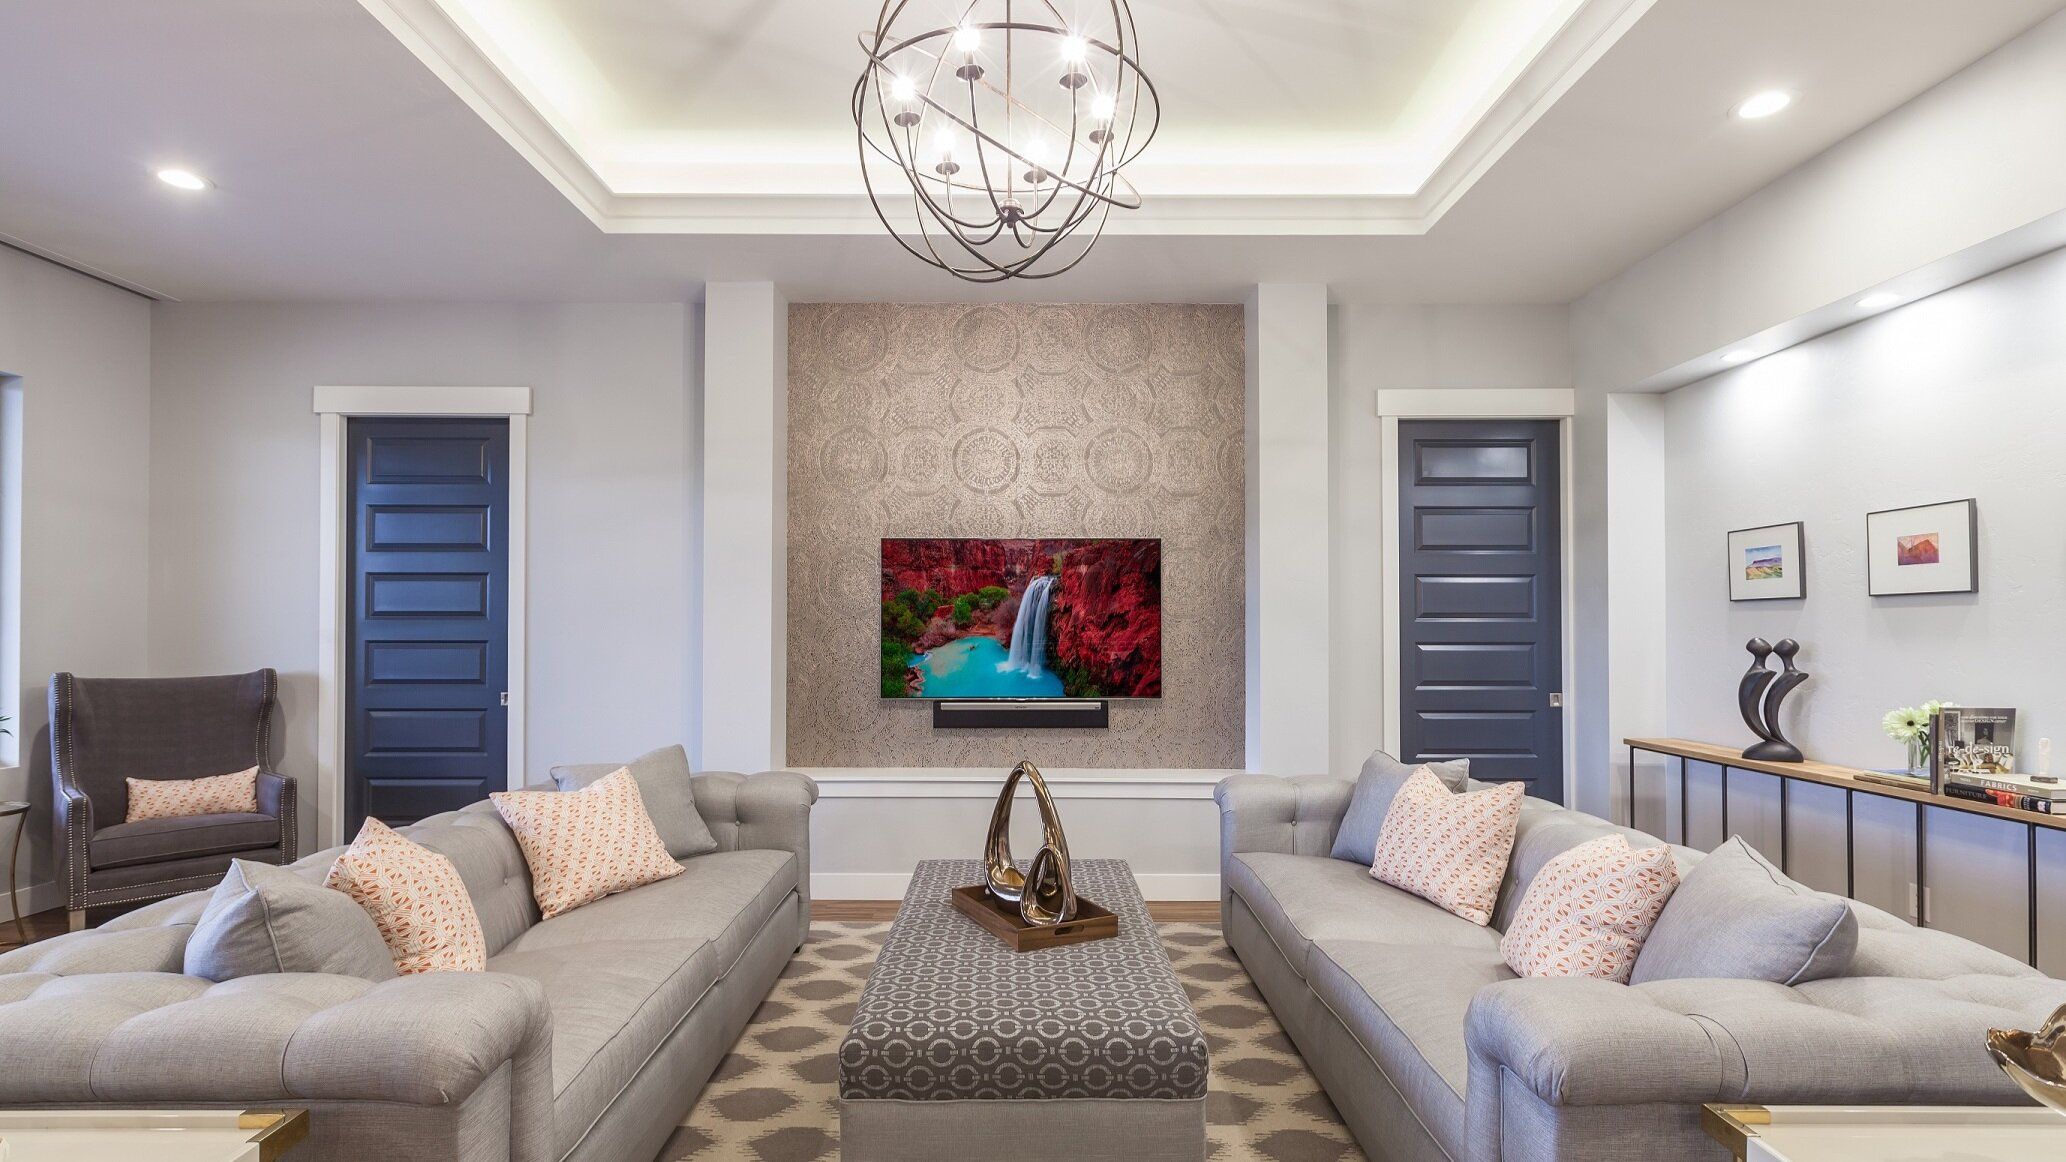 Residential Builders - Homeowners expect interior design.Add customer service, not overhead.Make homeowner meetings efficient.